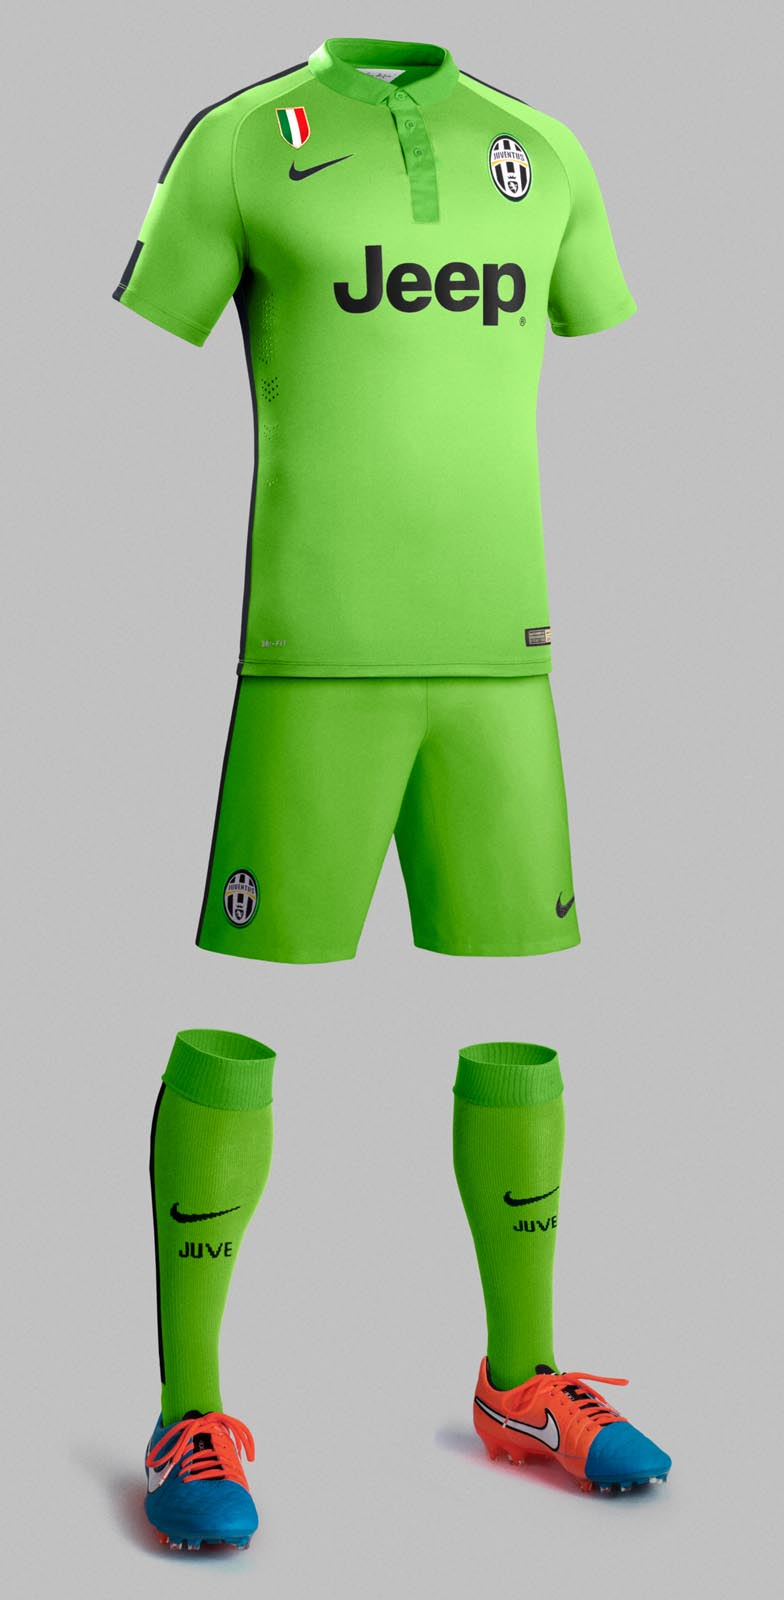 b6cd28fb Similar to the other Nike 14-15 Third Kits, the new Juventus 2014-2015  Third Kit features a darker tone of green on the back of the shirt, shorts  and socks.